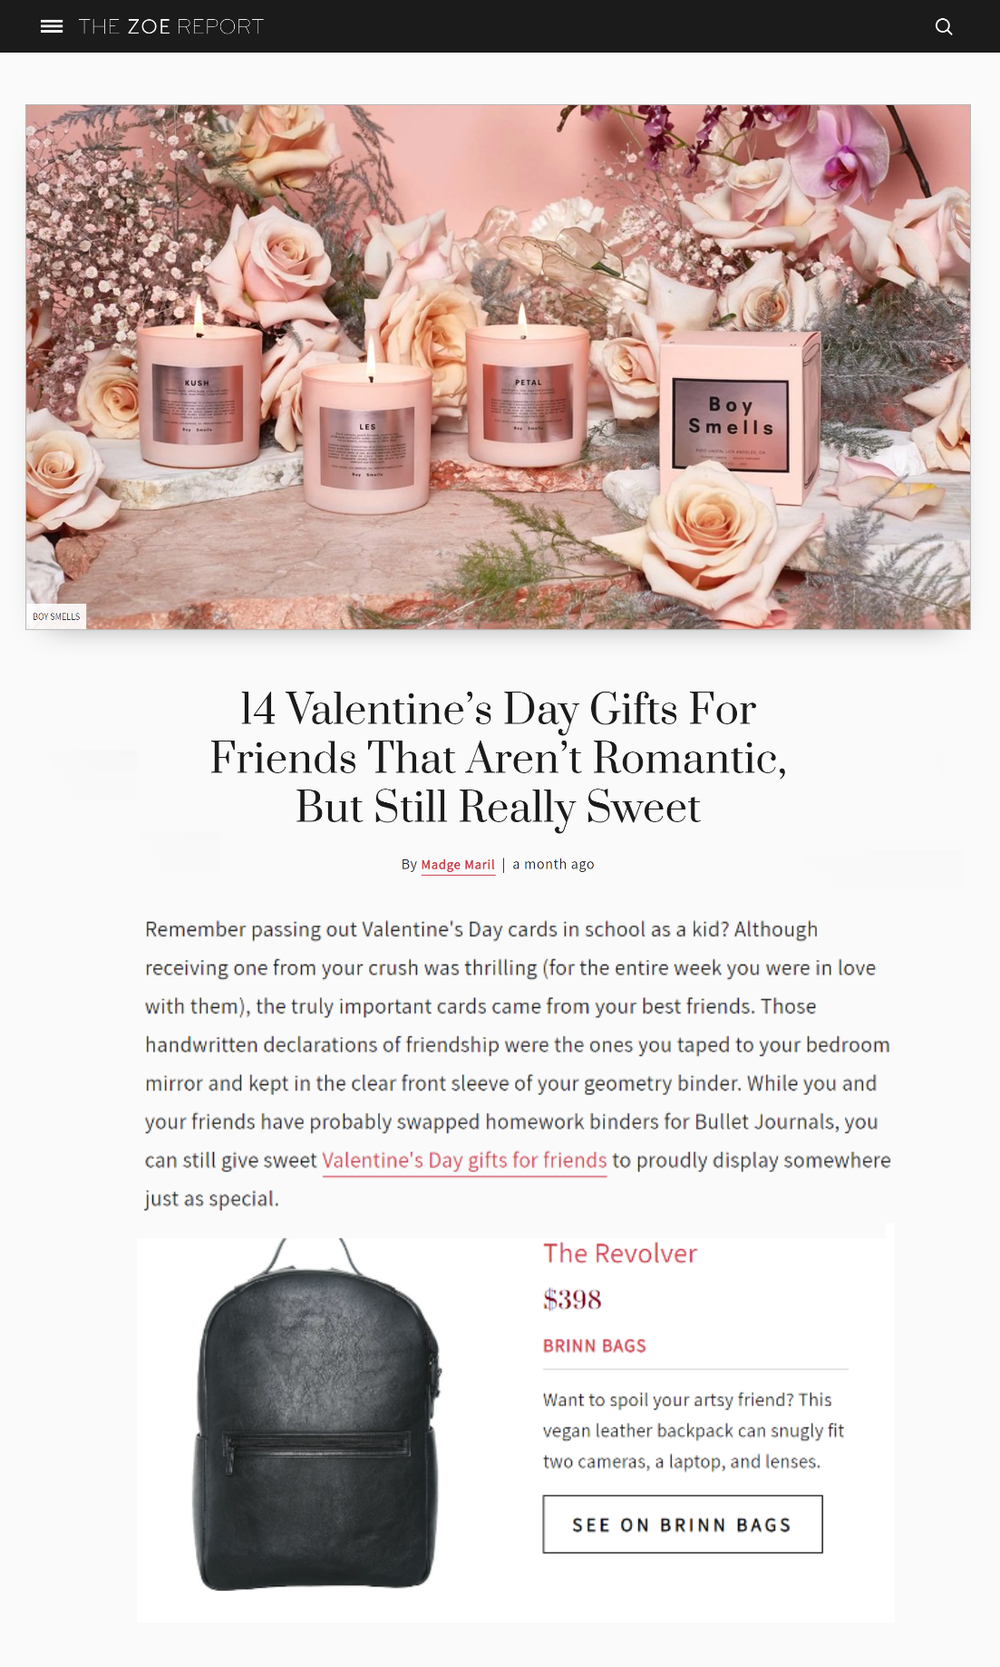 The Zoe Report Valentine's Gift Guide Featuring Brinn Vegan Leather Backpacks